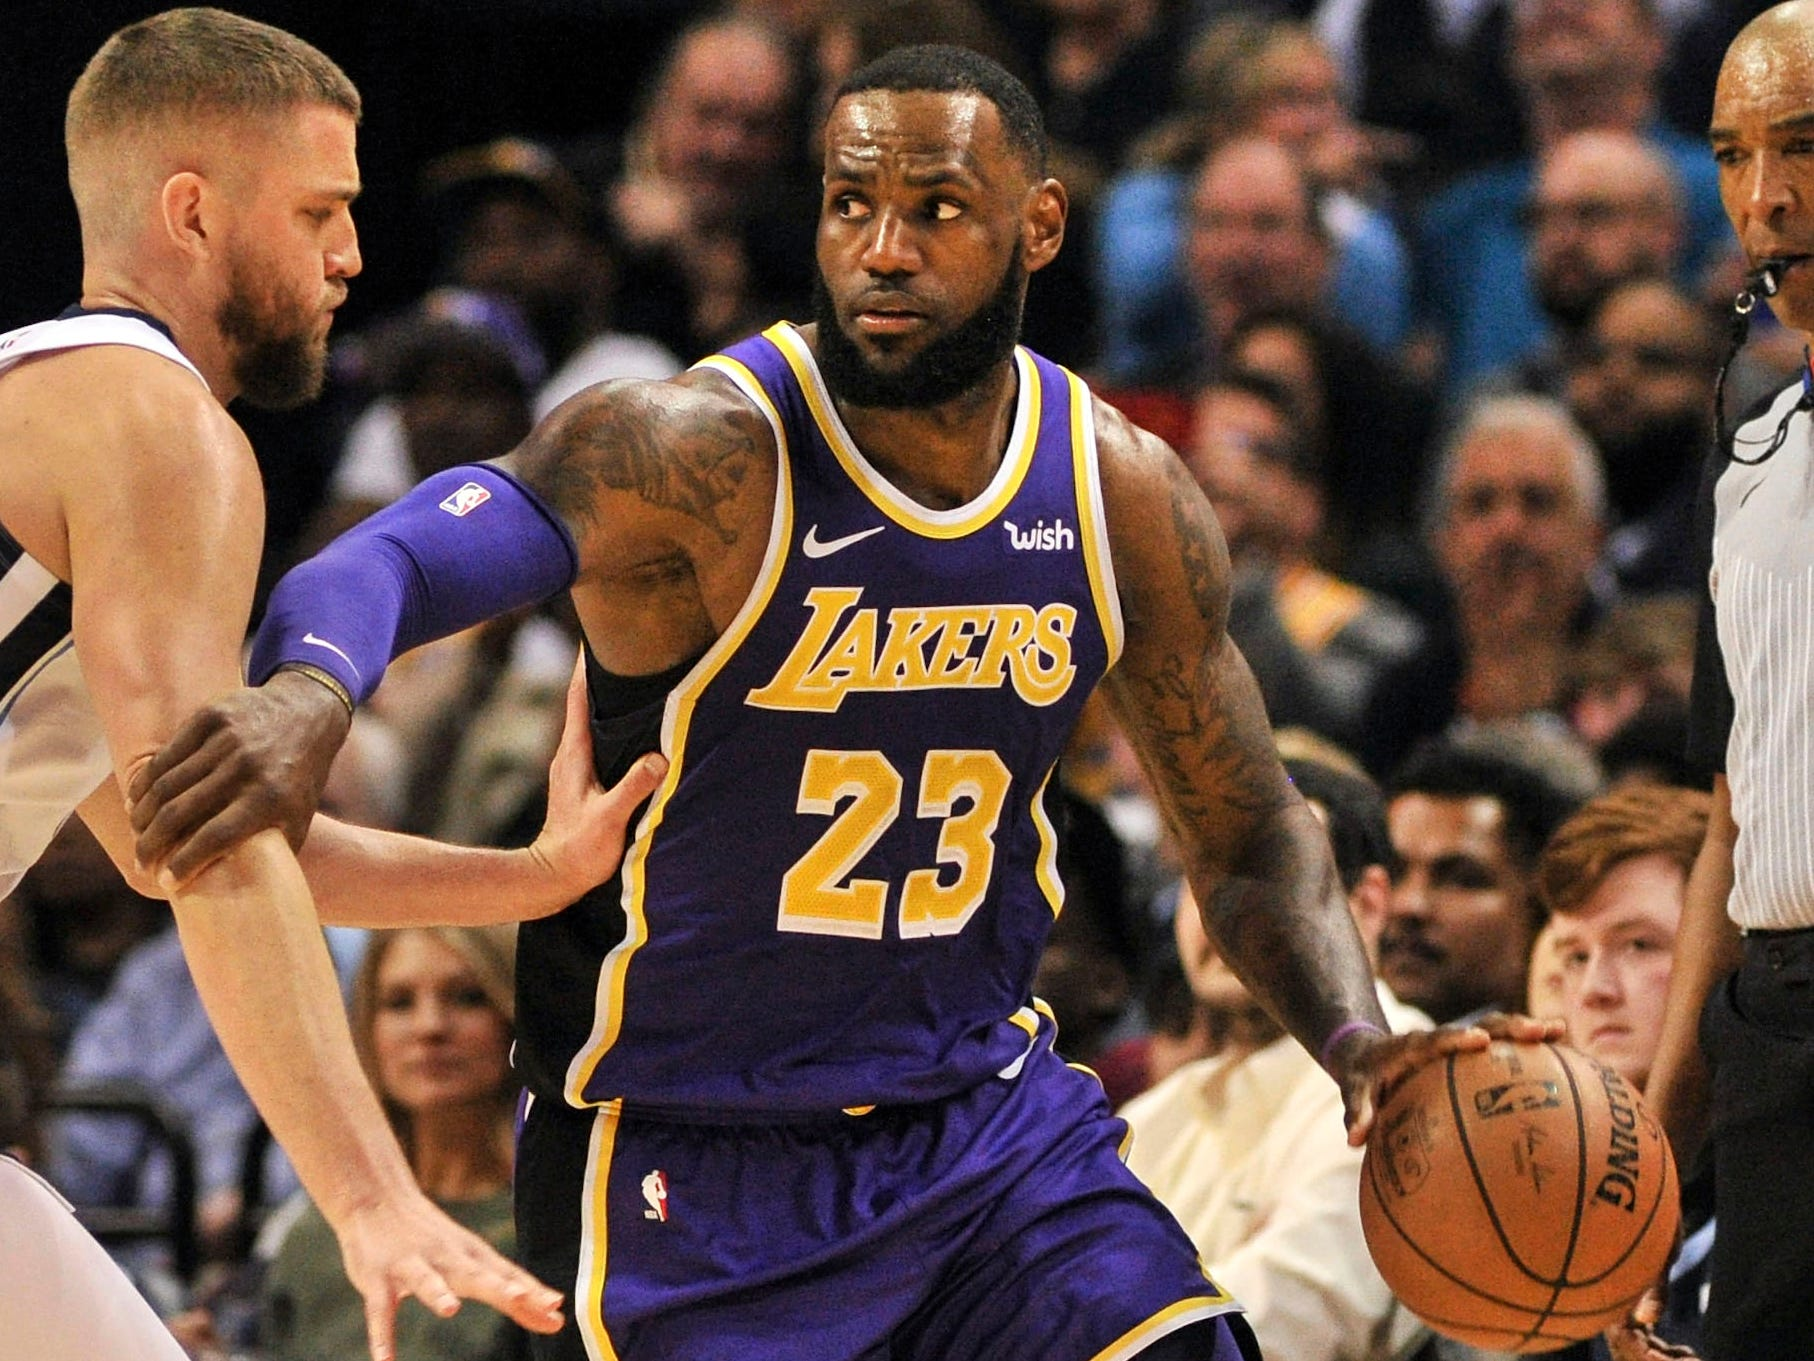 87. LeBron James, Lakers (Feb. 25): 24 points, 12 rebounds, 11 assists in 110-105 loss to Grizzlies (sixth of season).